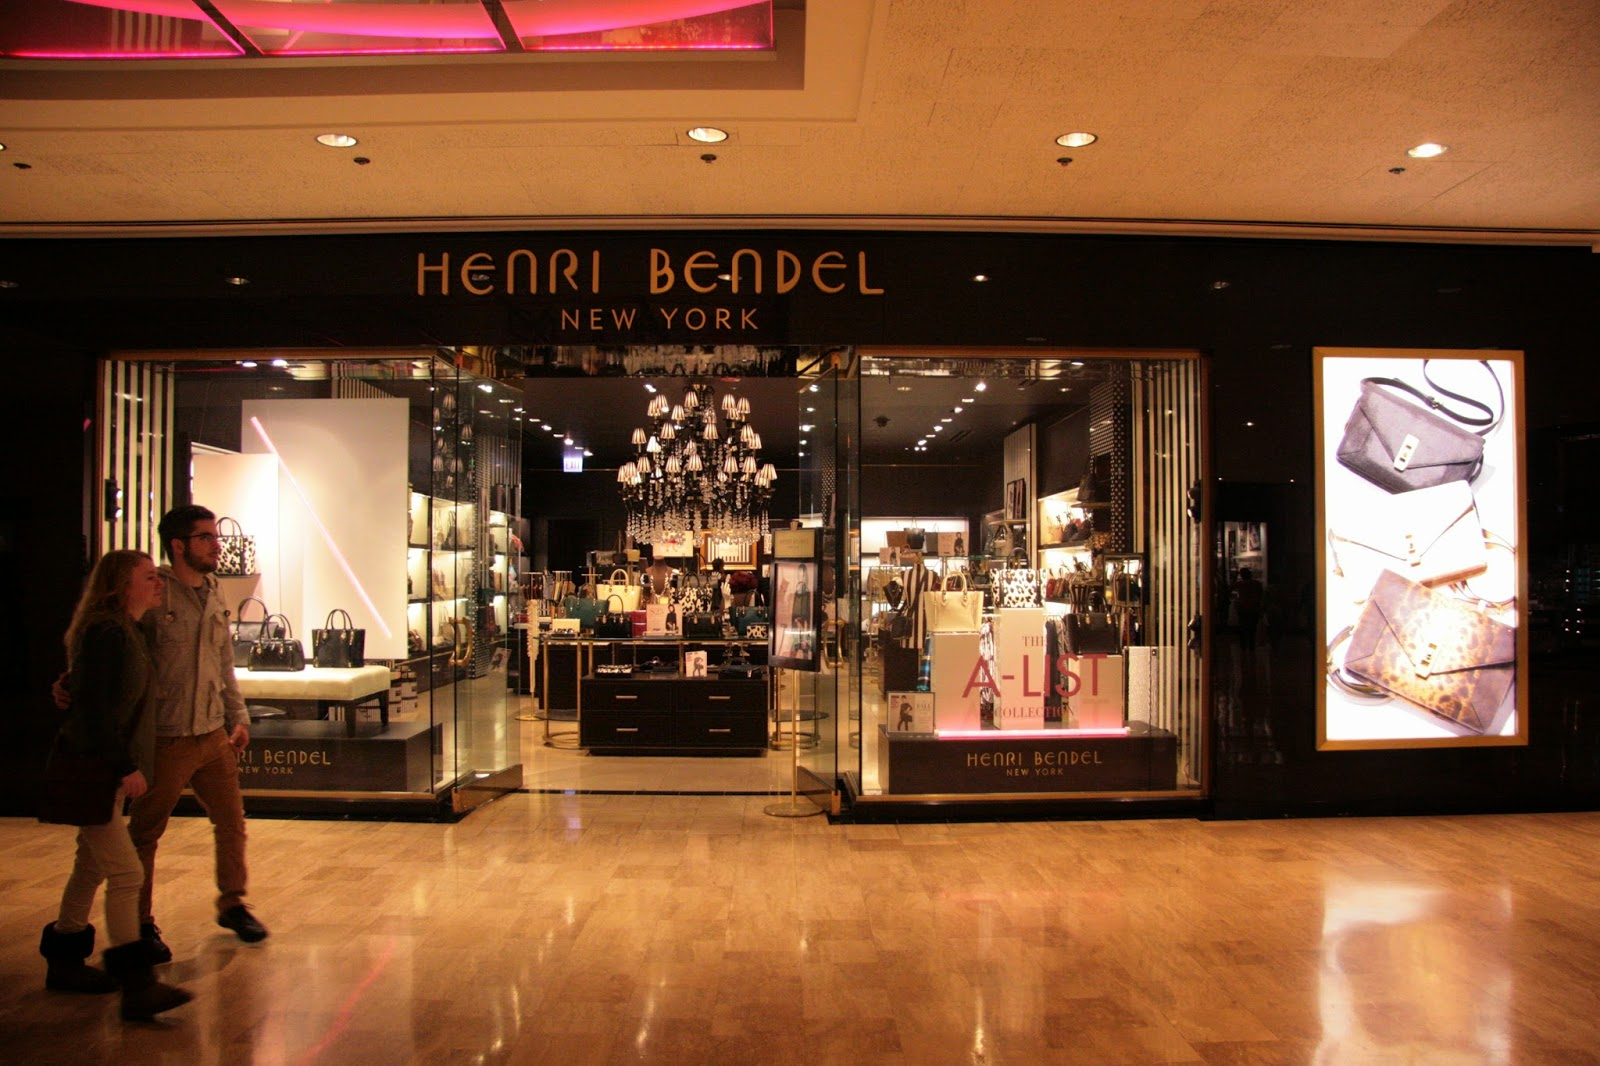 Henry Bendel New York Store photography by Lisha